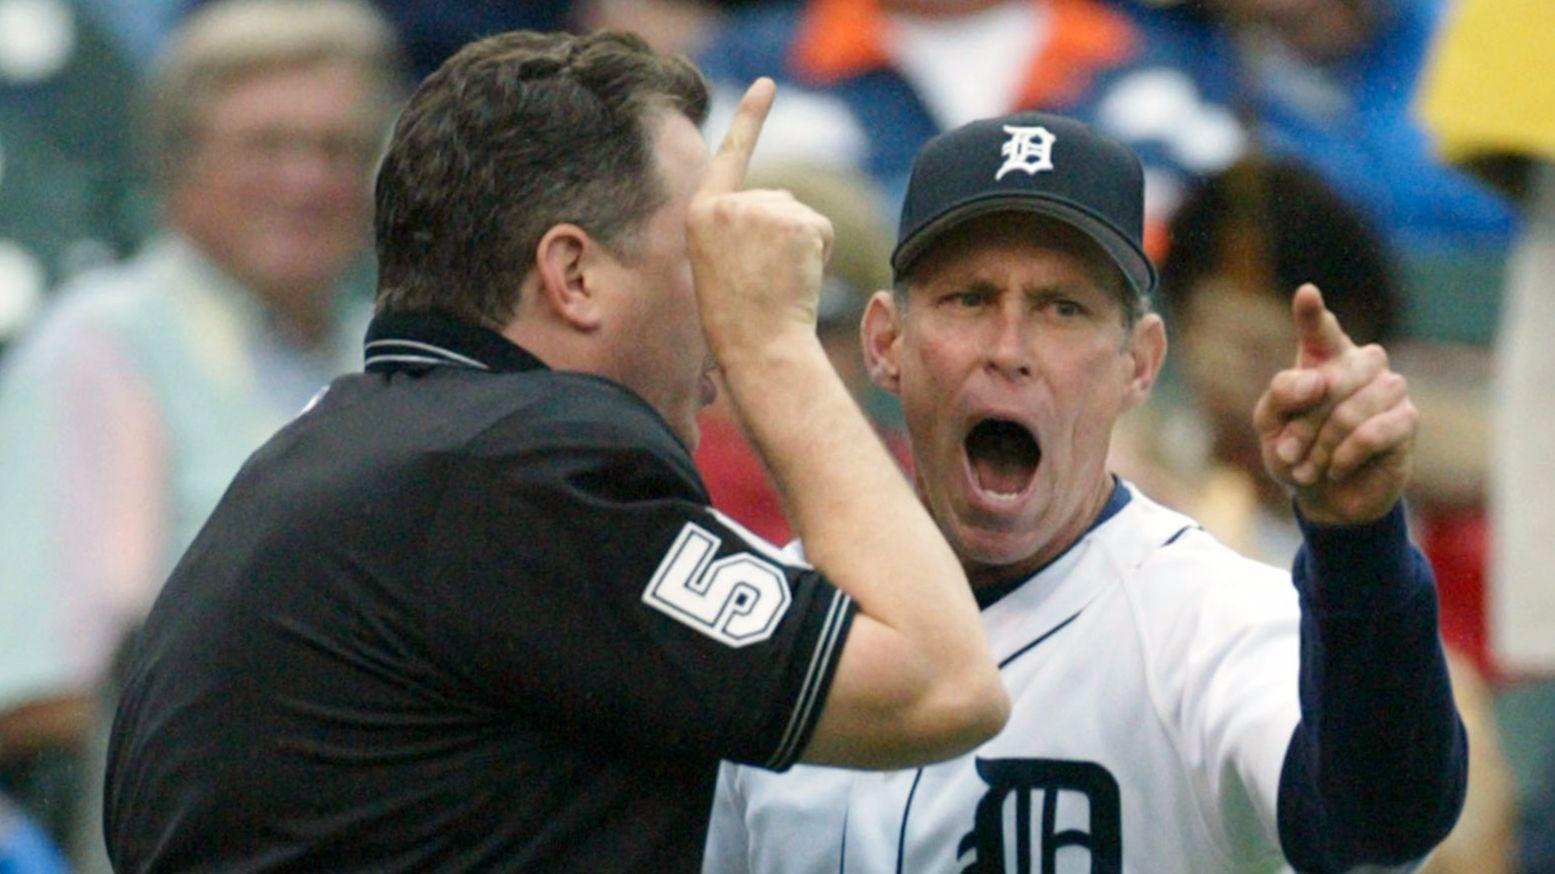 Jack Morris Alan Trammell Voted Into Hall Of Fame By